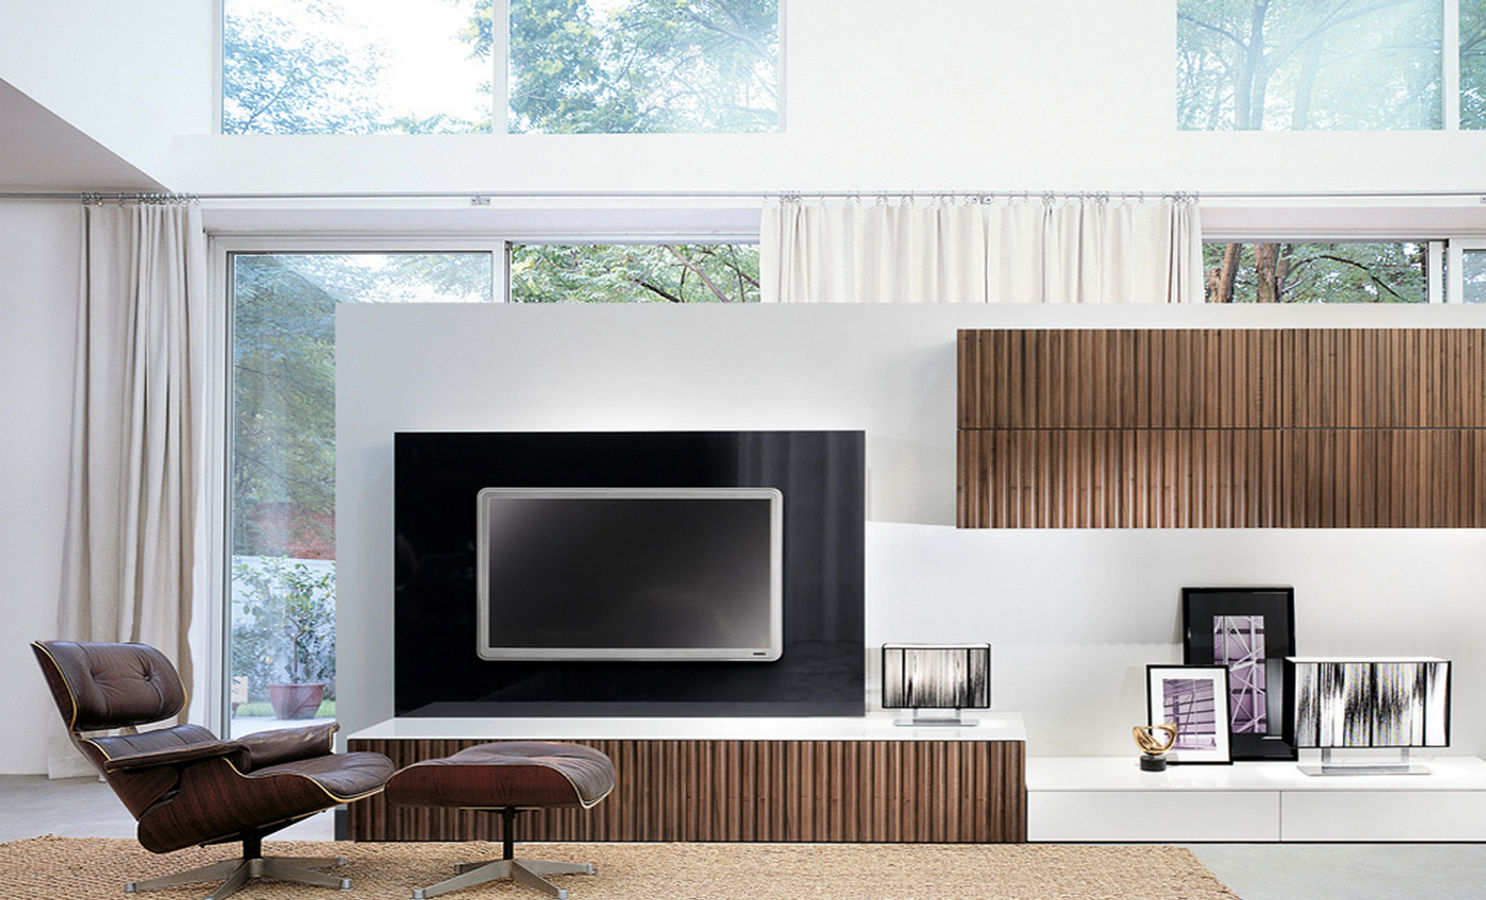 Wall Unit Designs For Small Living Room Acnn Decor,French Interior Design Ideas